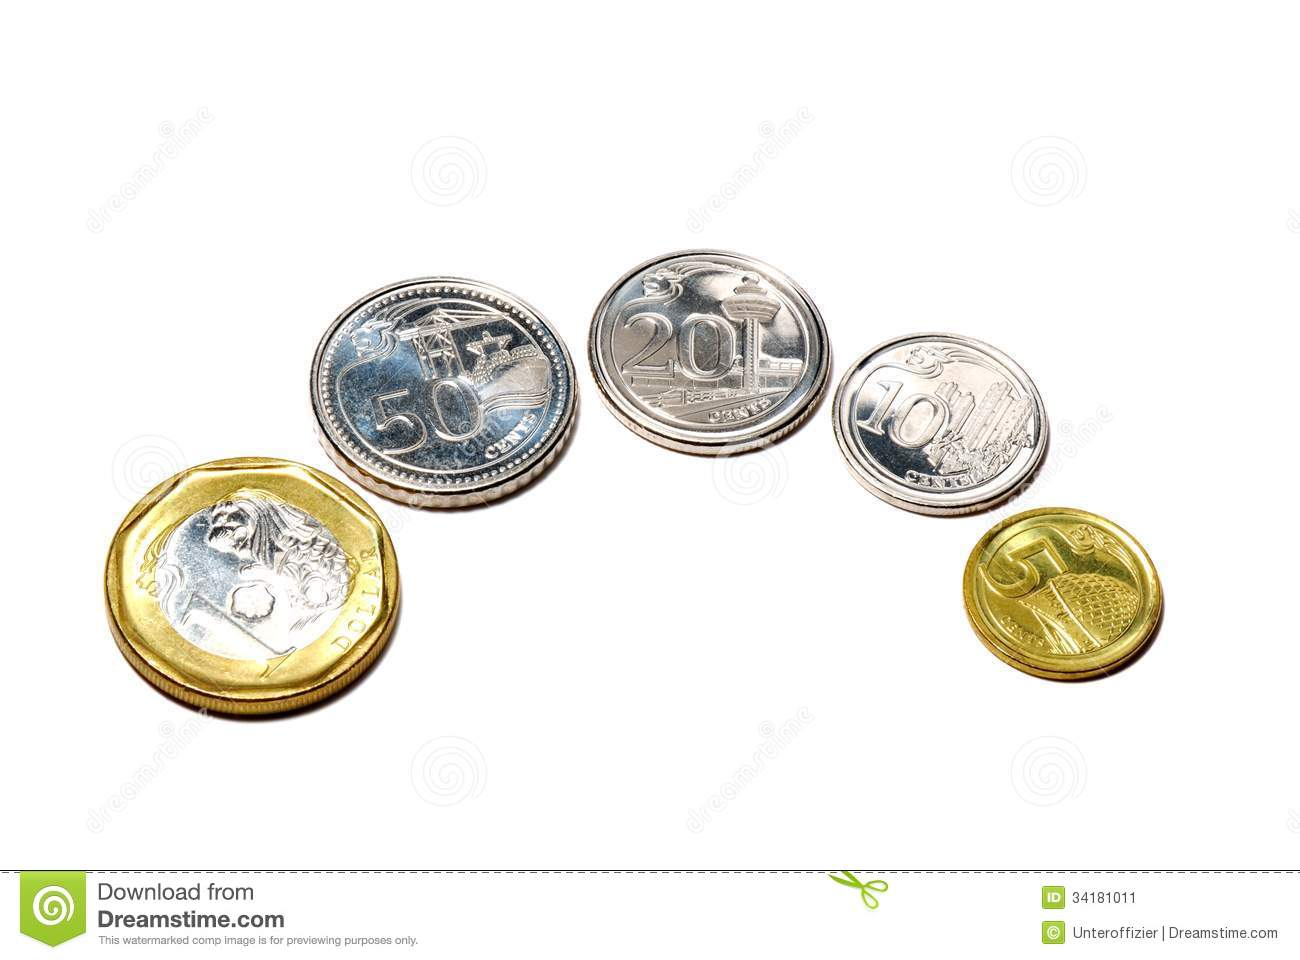 New Singapore Coins